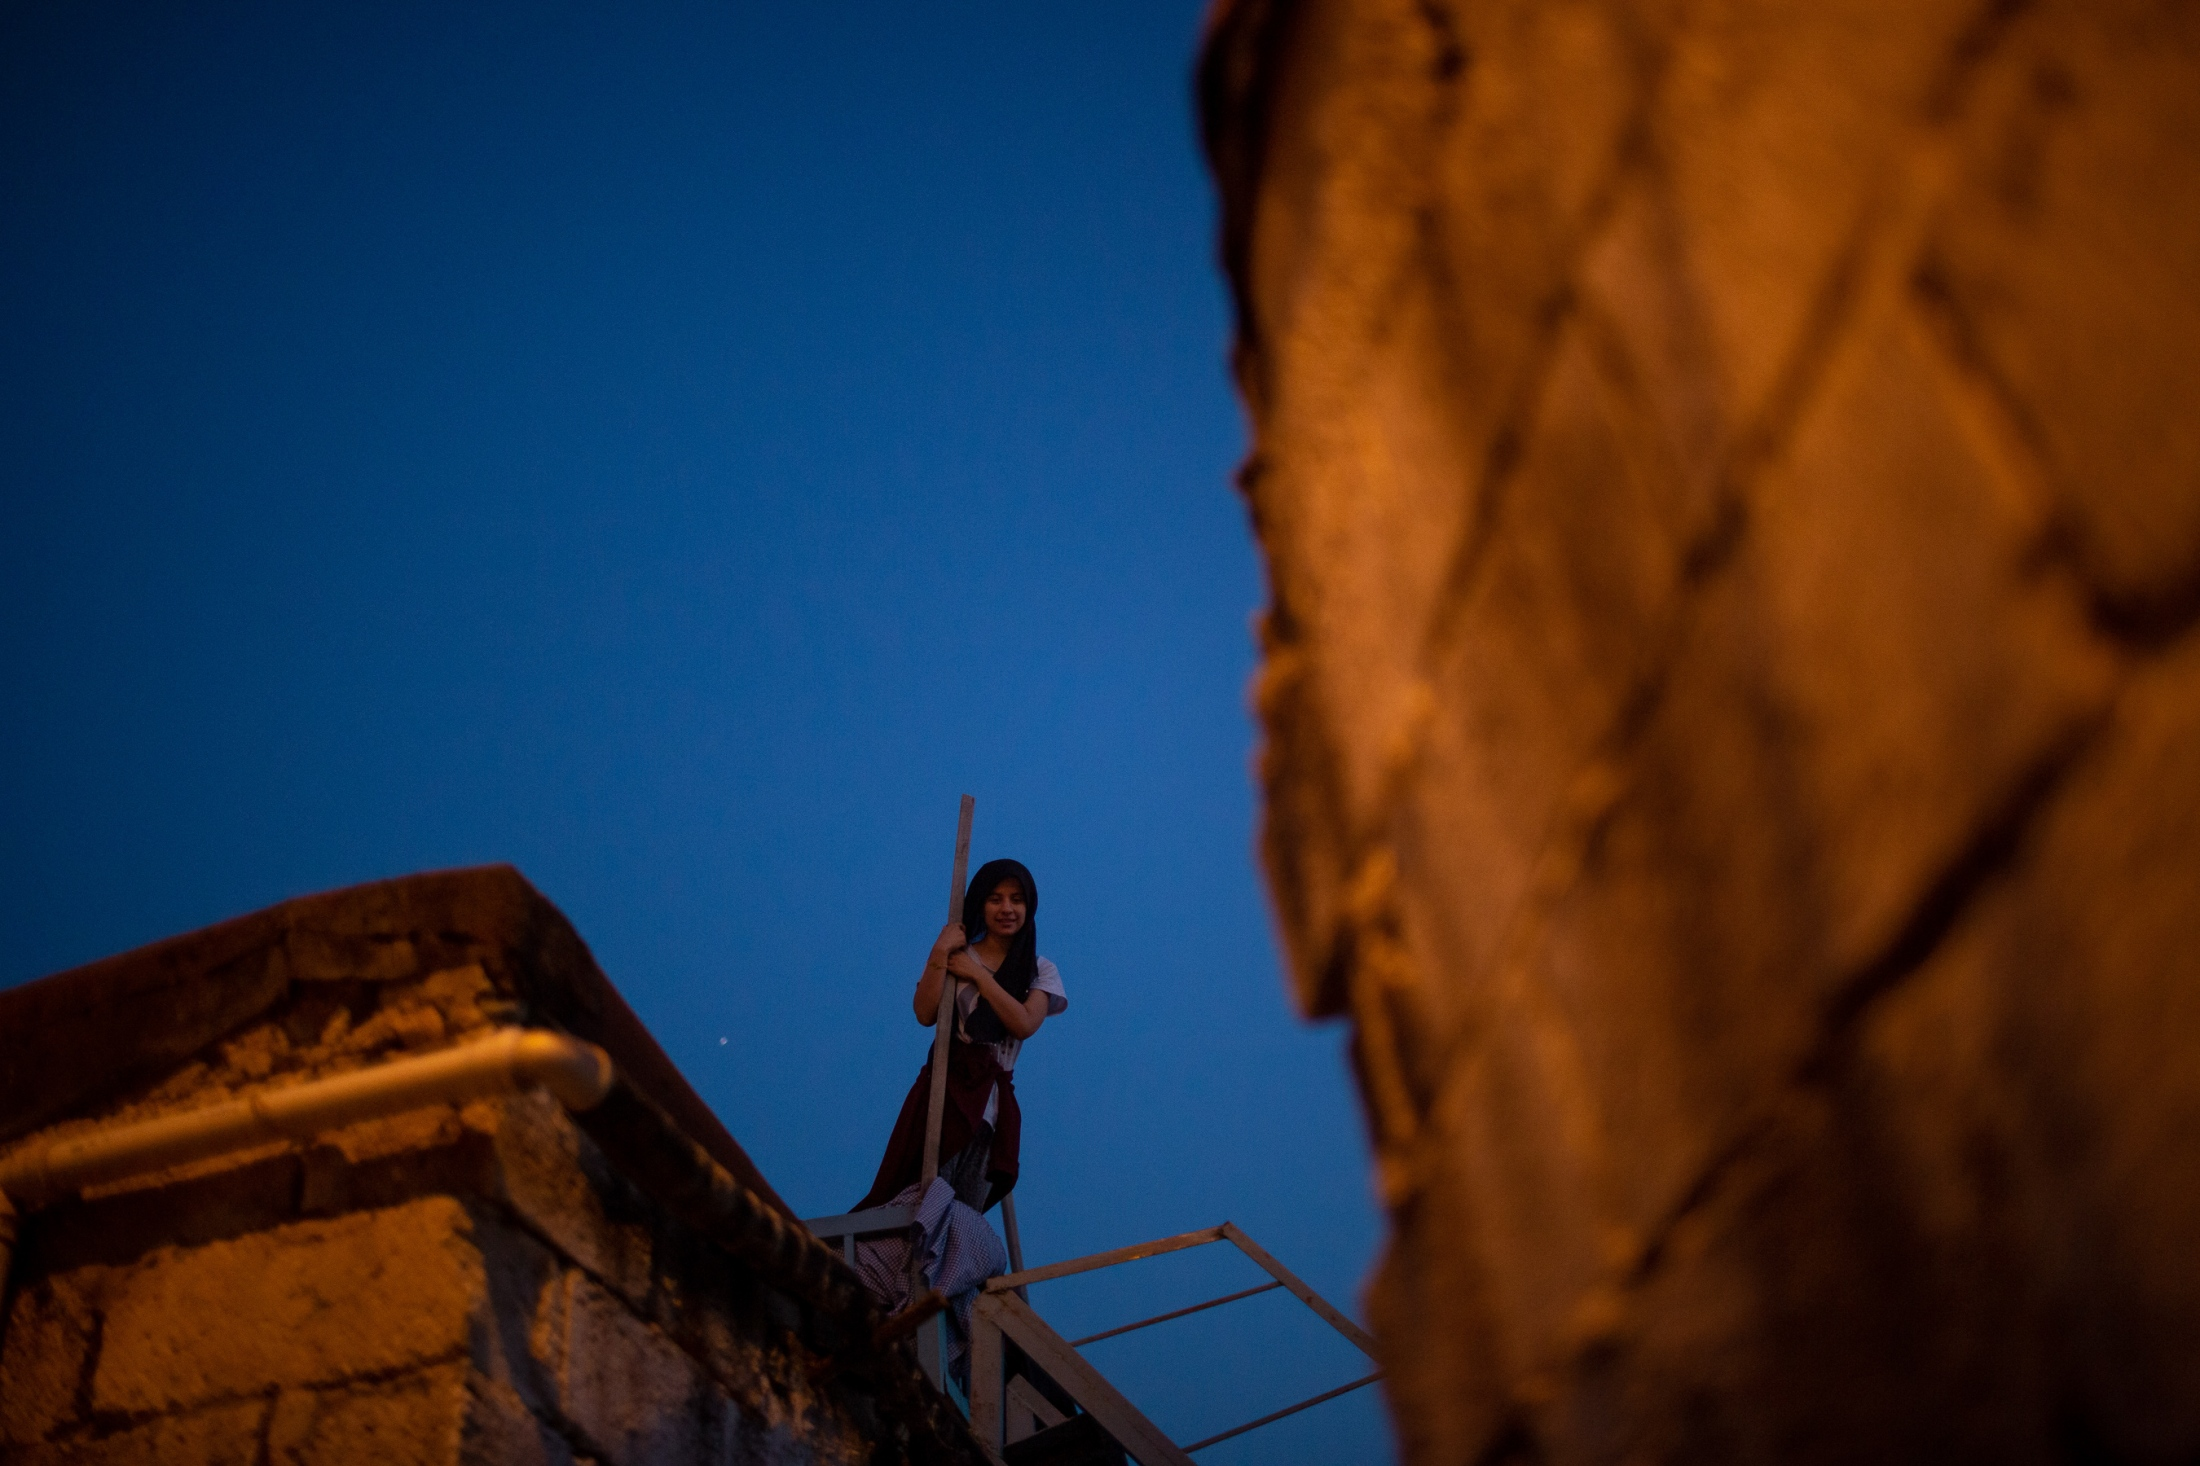 A young Kurdish girl playfully watches on from the roof of her home. Residents sleep outside on the roof of their homes during the summer when the air is warm and sleeping outside provides a relief from the heat.